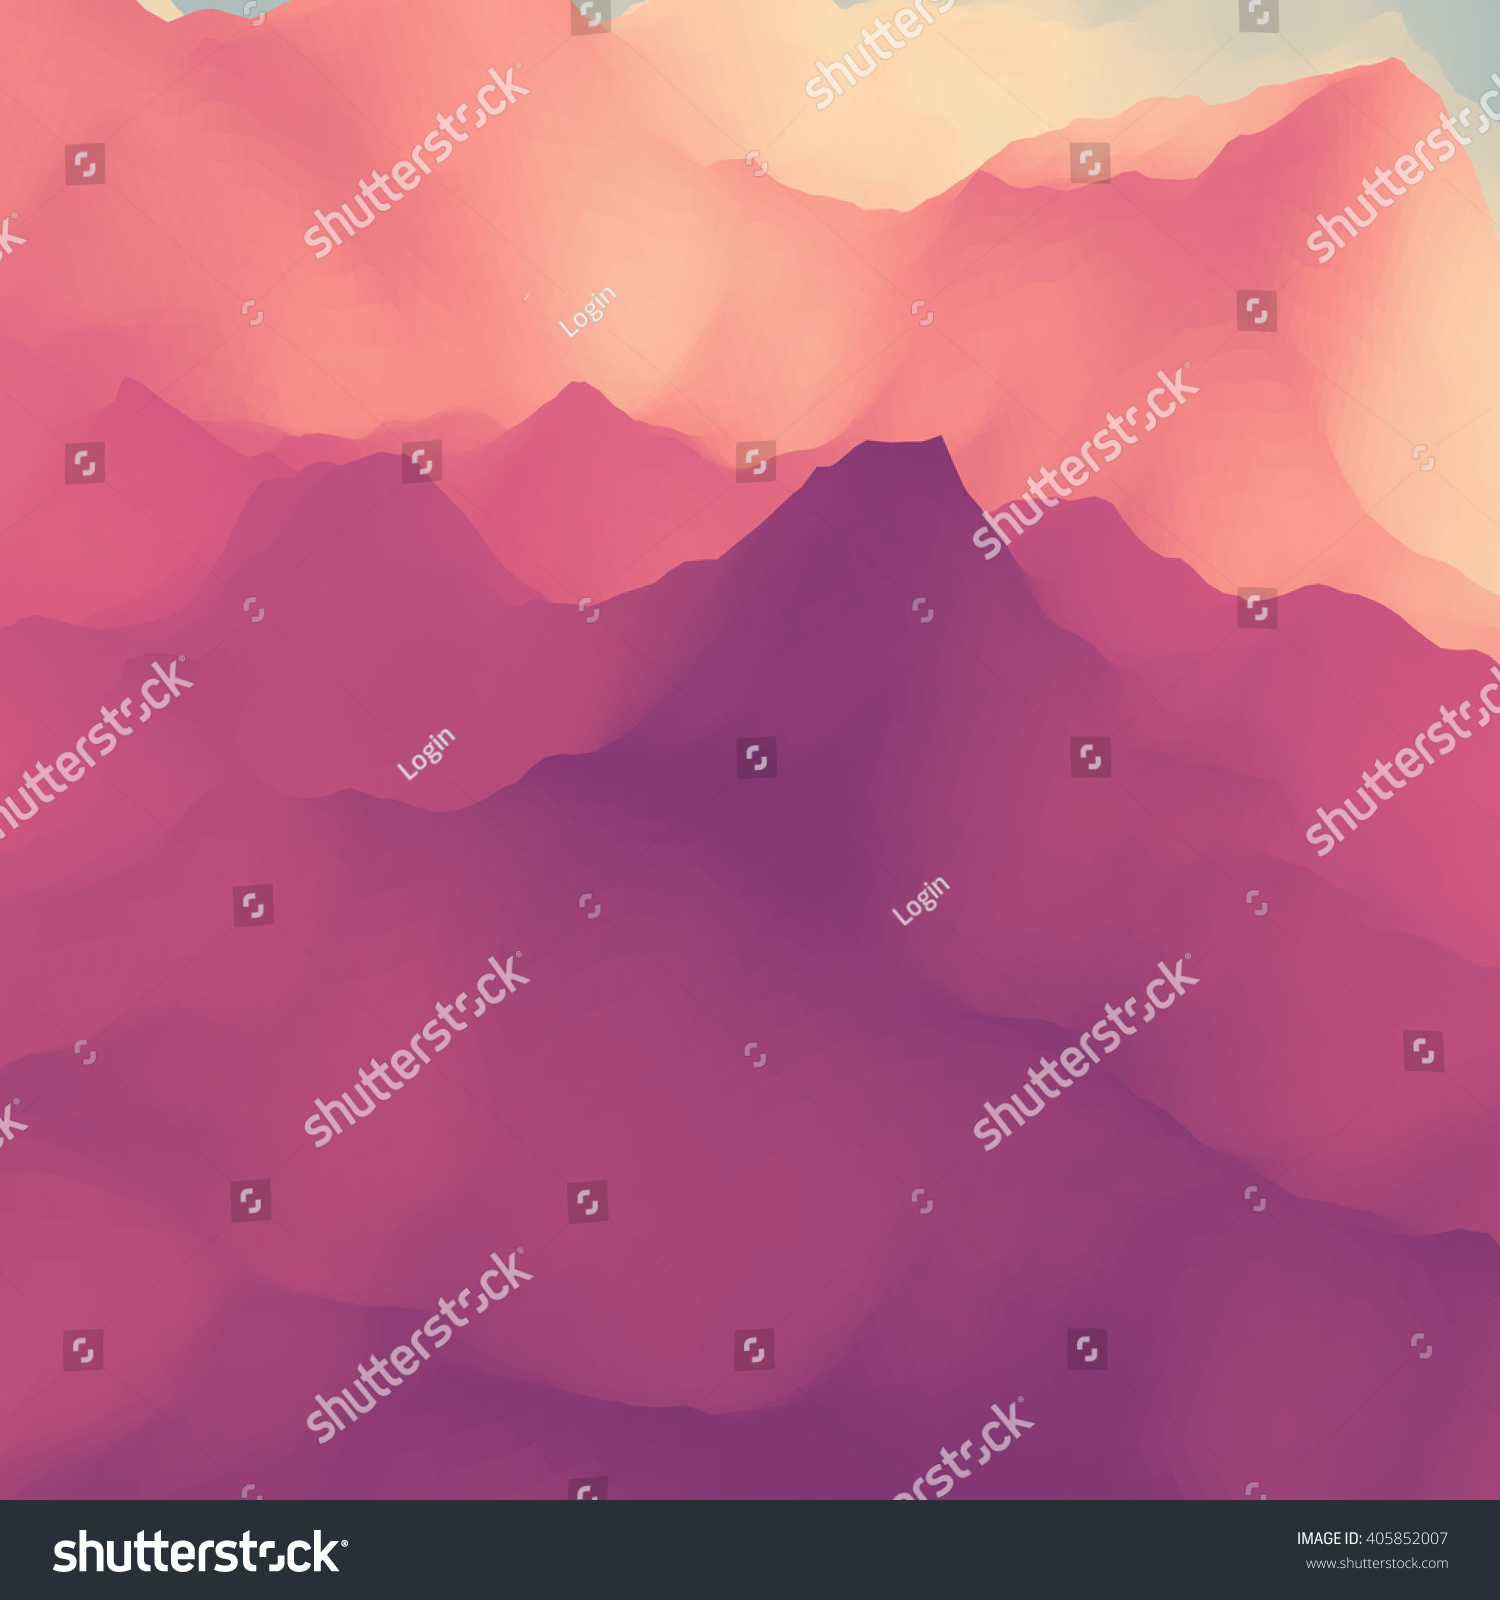 Mountain Landscape Mountainous Terrain Vector Silhouettes Of Mountains Backgrounds